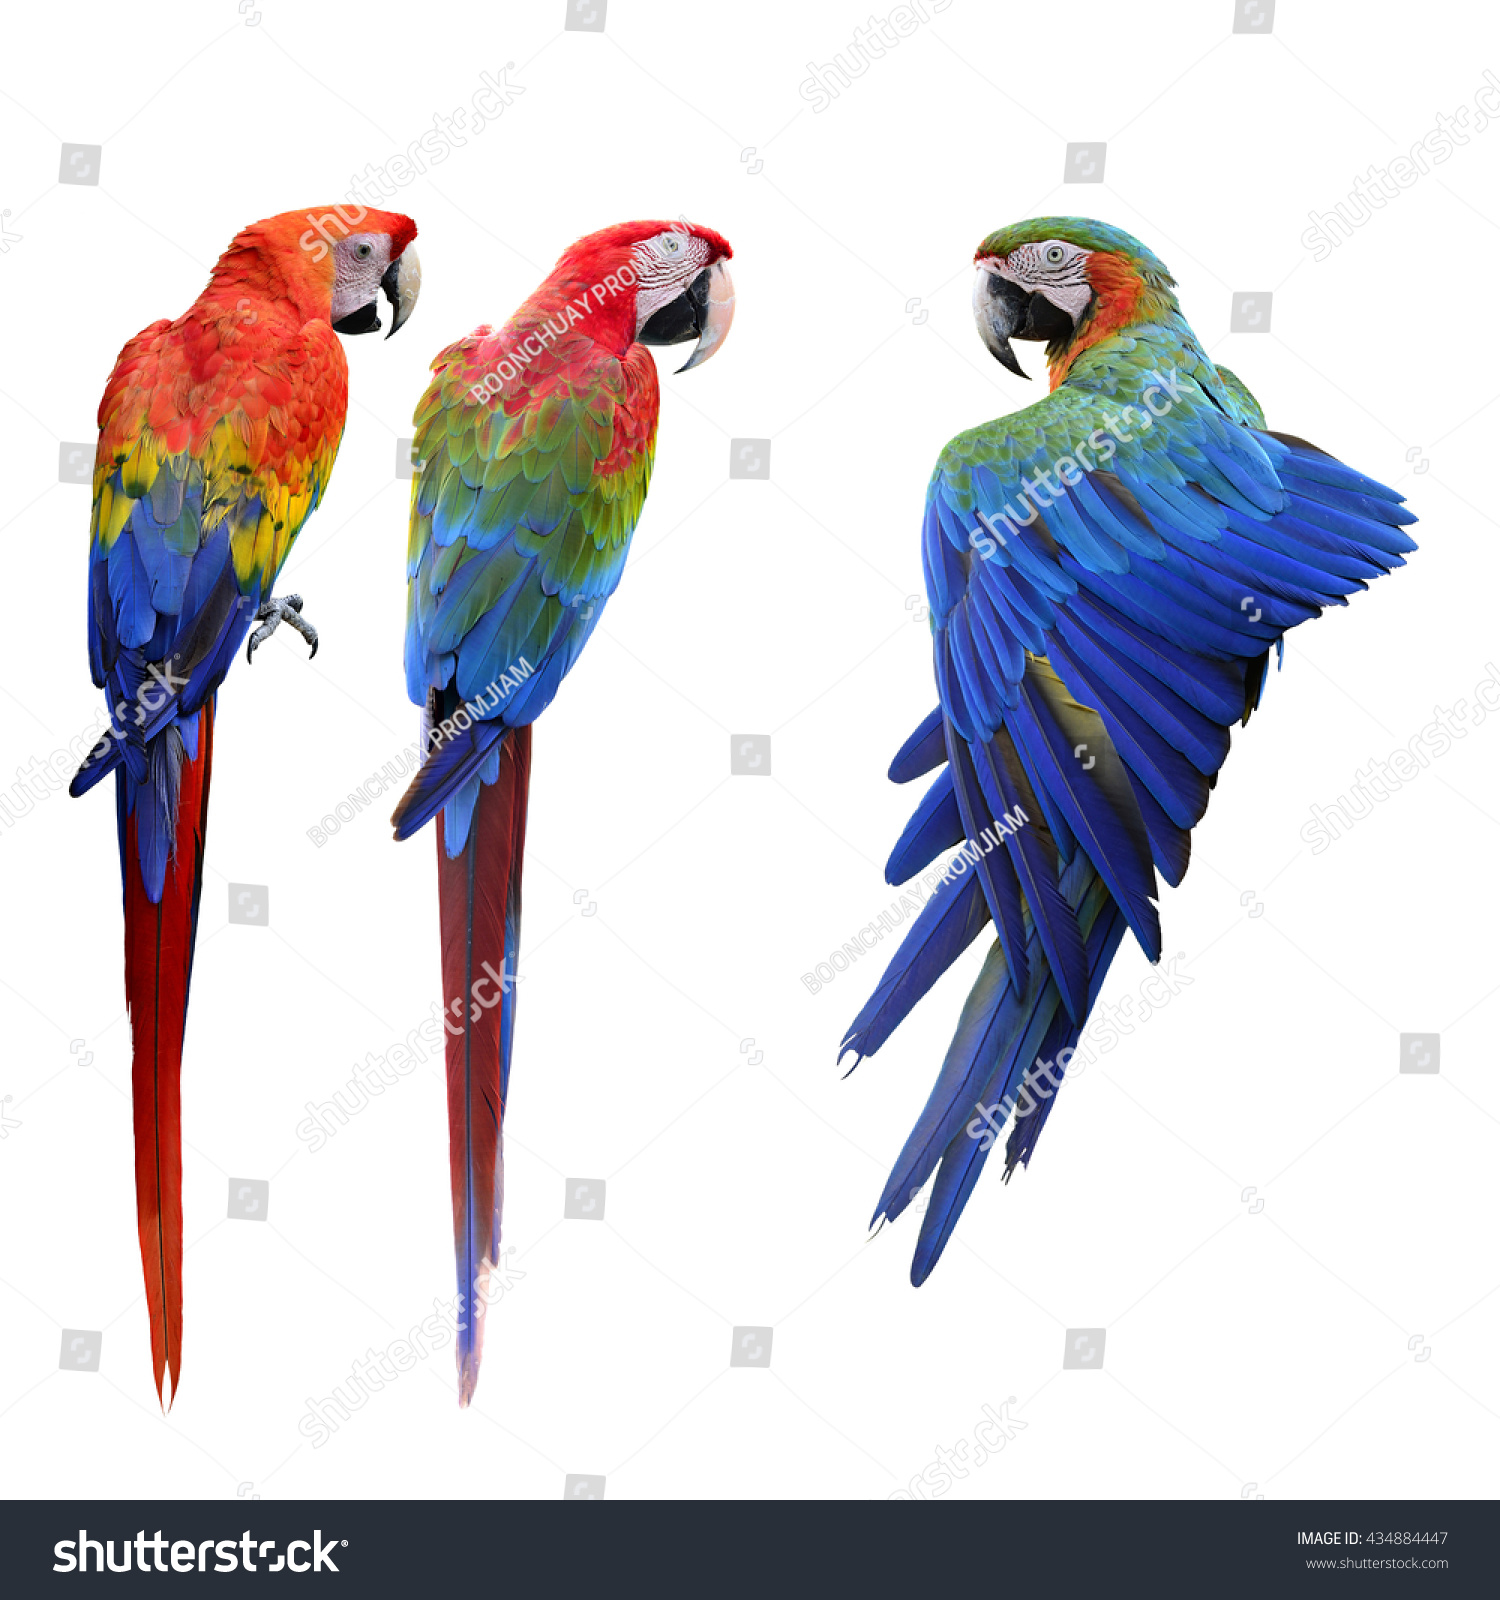 Beautiful Macaw Stock Photo 171074747 - Shutterstock